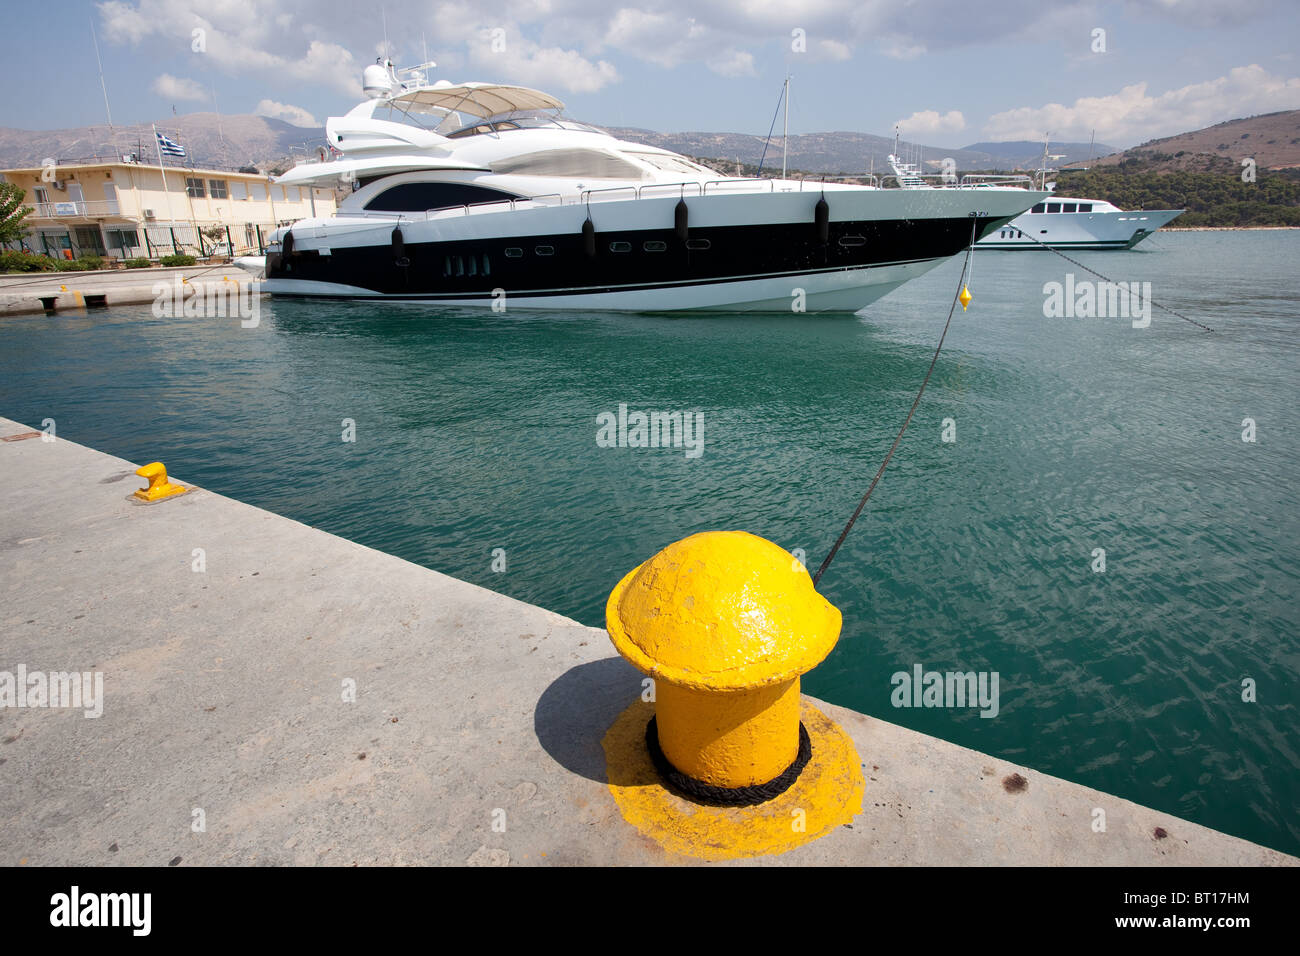 Luxury private yacht tied up at Cephalonia harbour - Stock Image